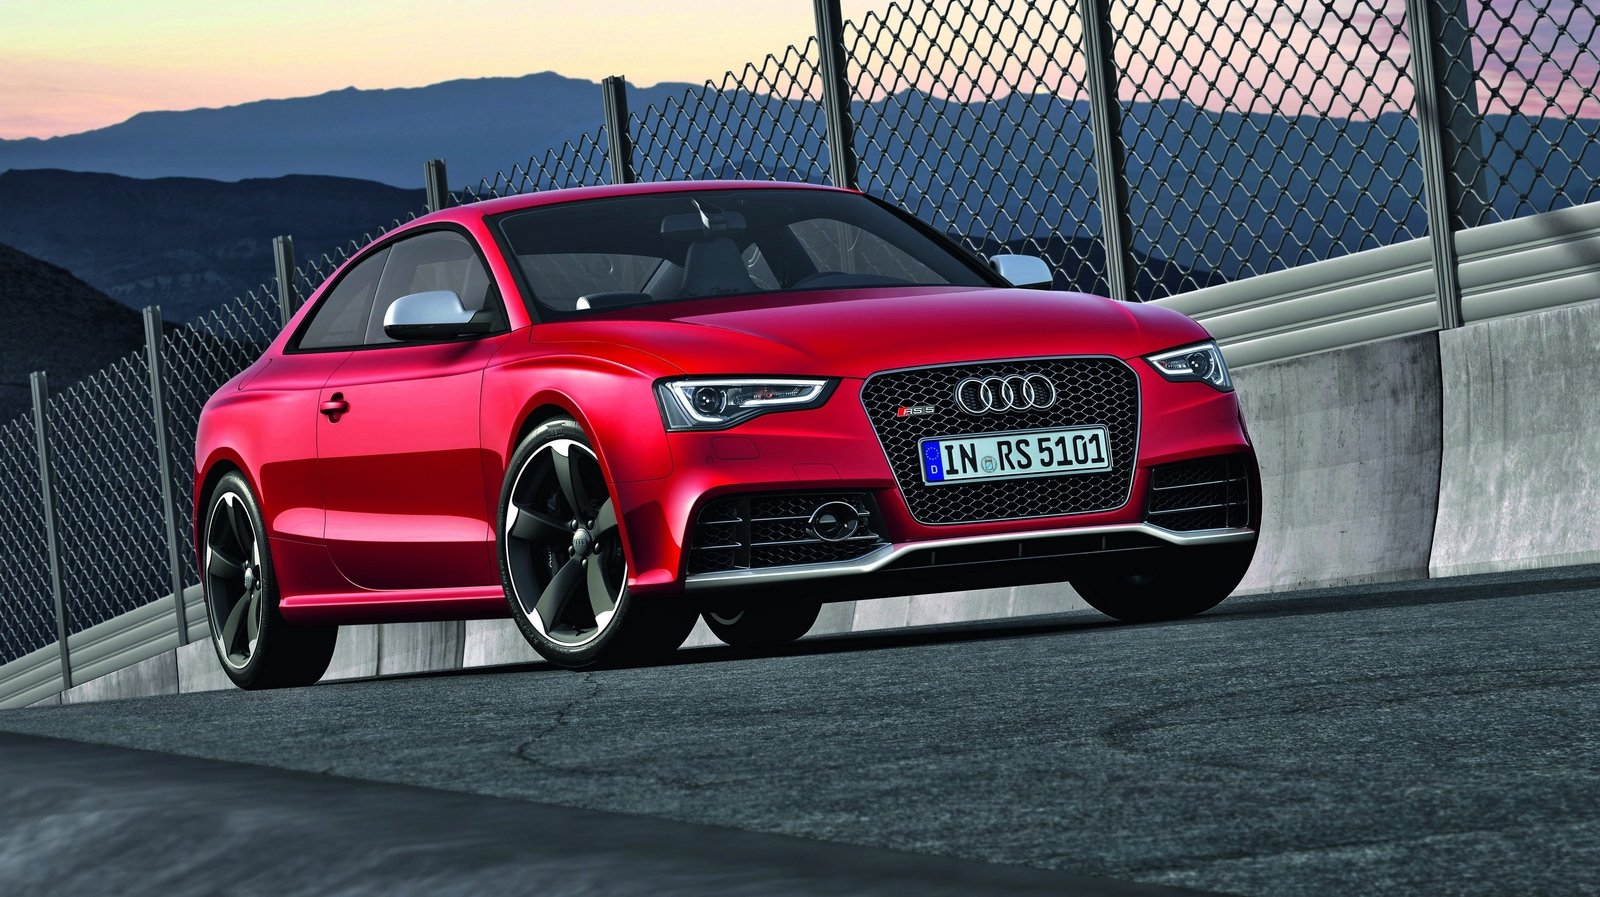 2014 audi rs5 picture 574081 car review top speed. Black Bedroom Furniture Sets. Home Design Ideas